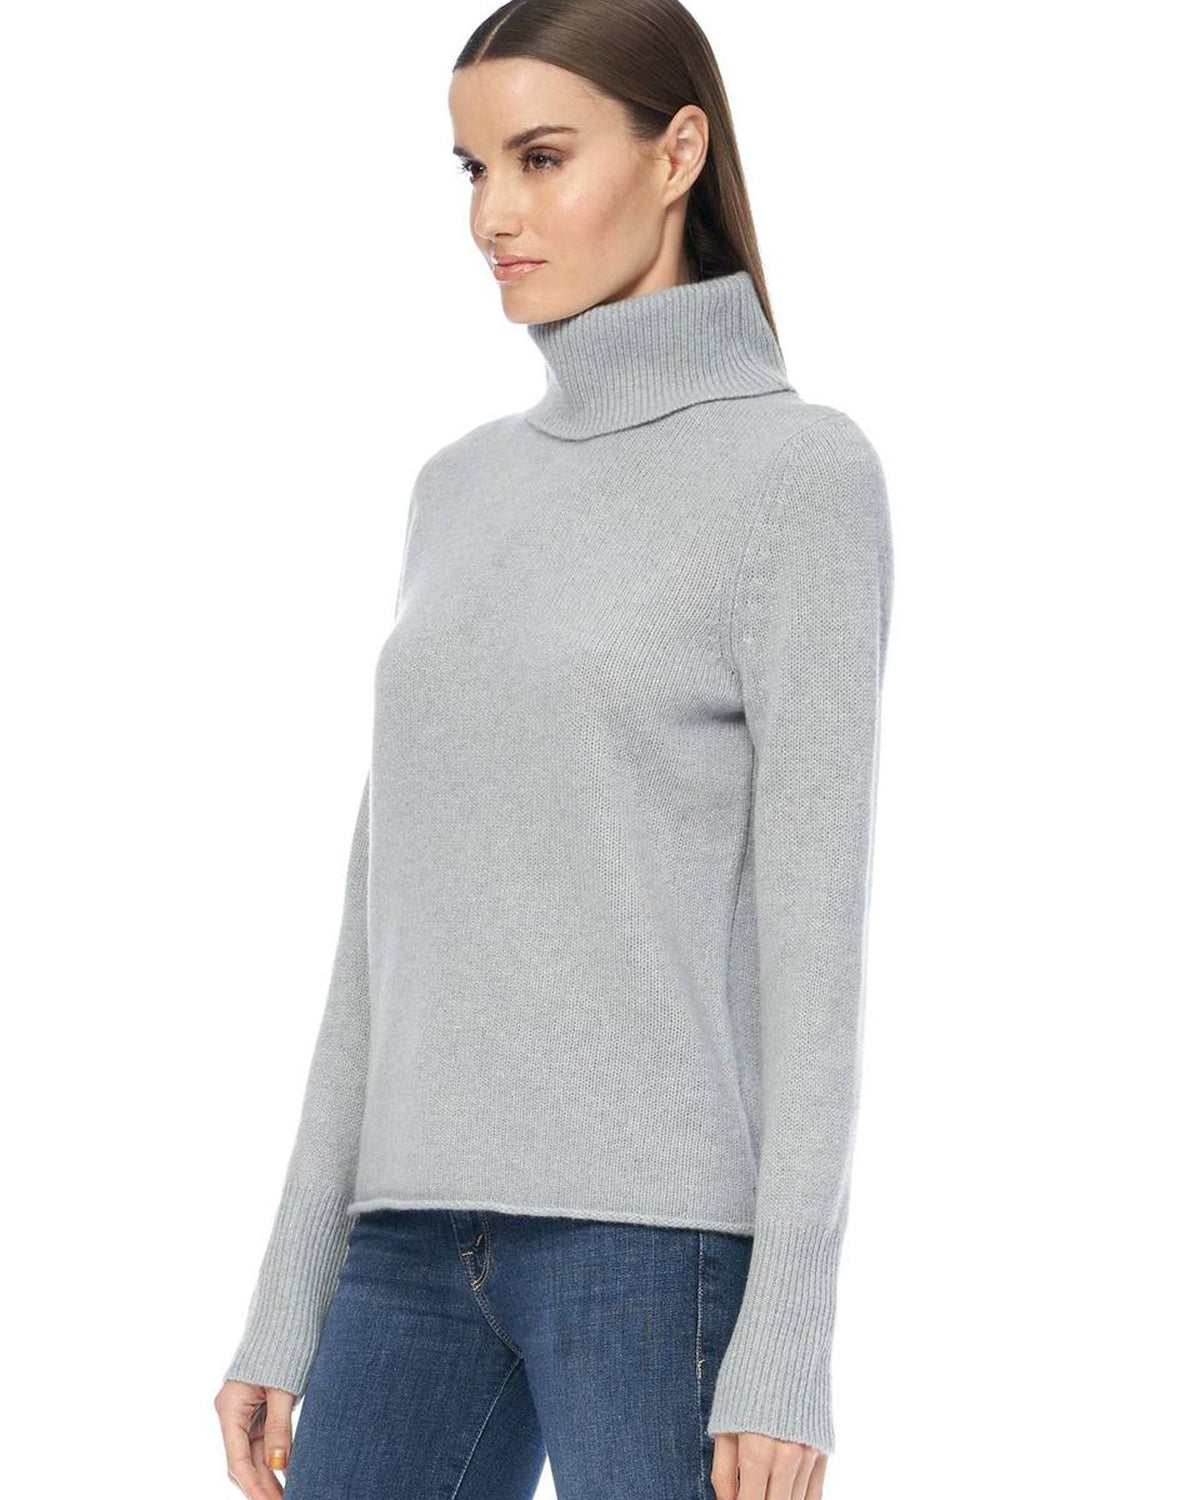 360 Cashmere Clothing Poppi Fitted Crop Turtleneck in Misty Blue